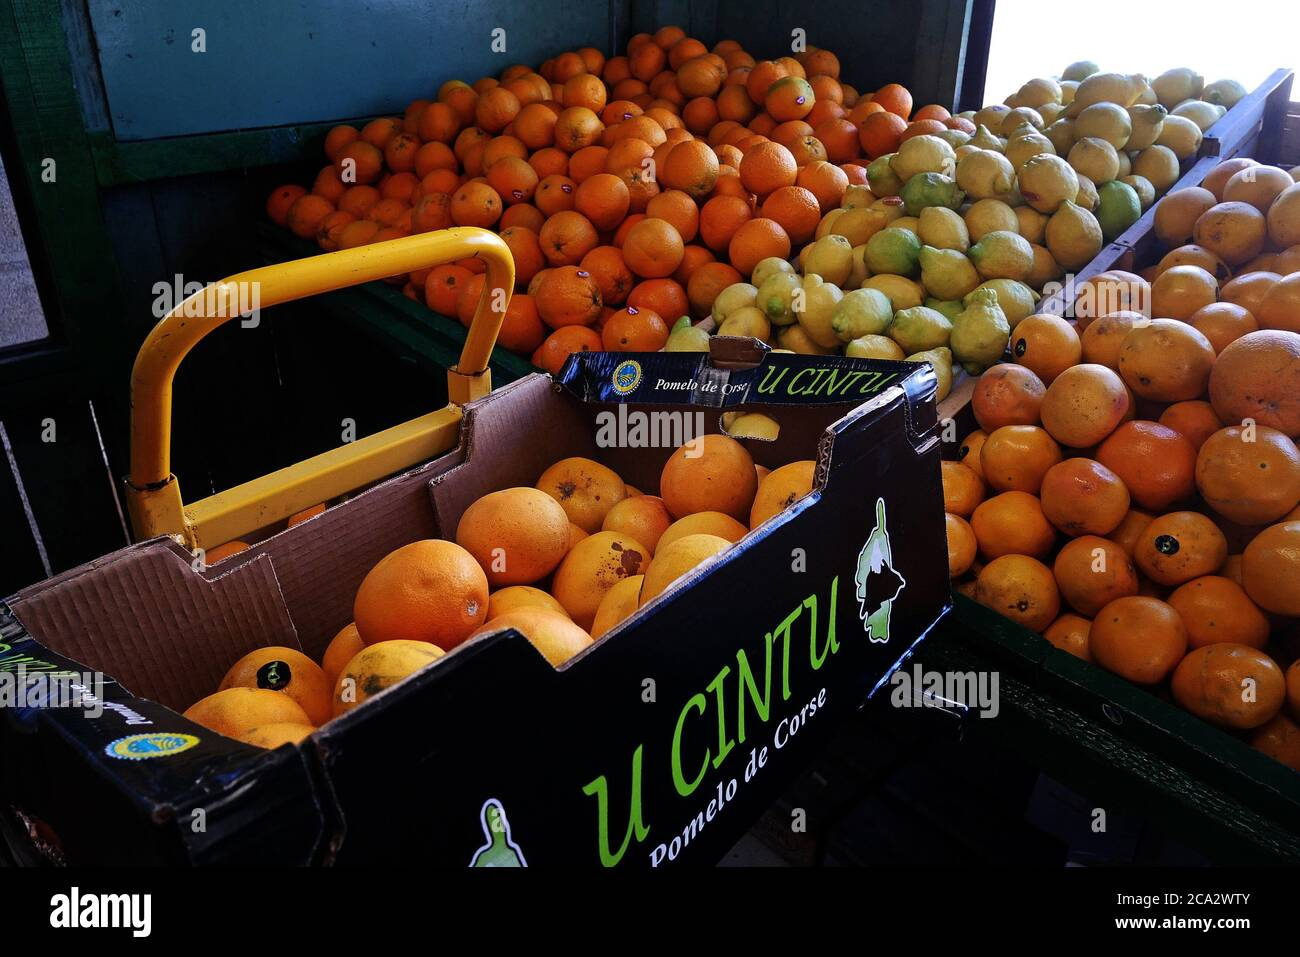 Display of citrus fruit at a fruit stand in France. Stock Photo